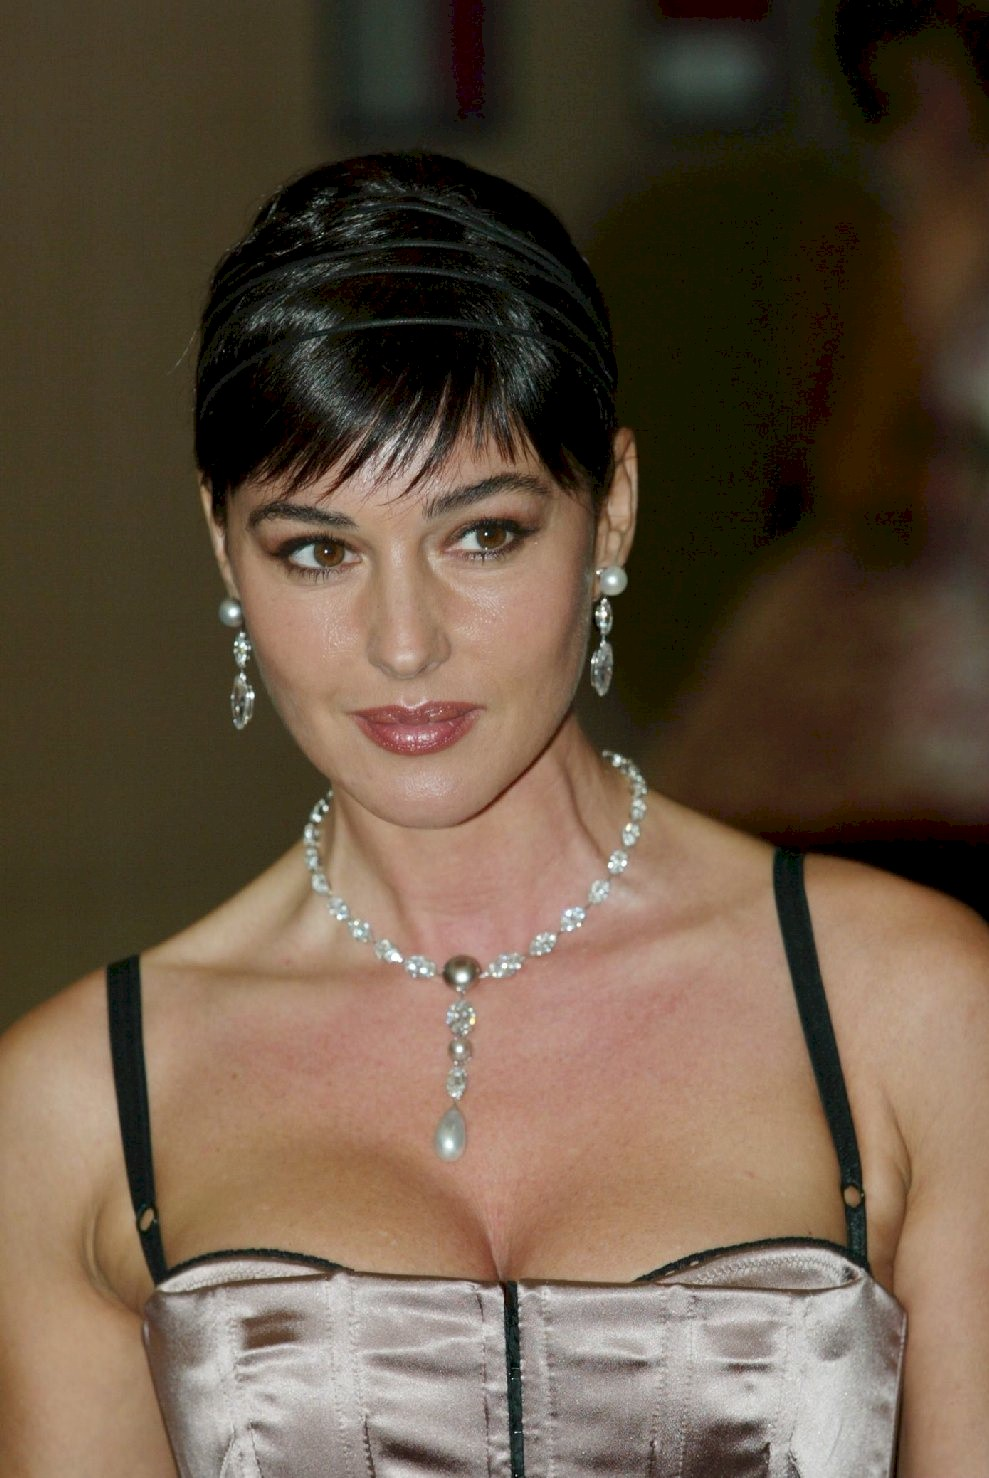 celebrity photos monica bellucci monica bellucci photo 647 6 vote Monica Bellucci